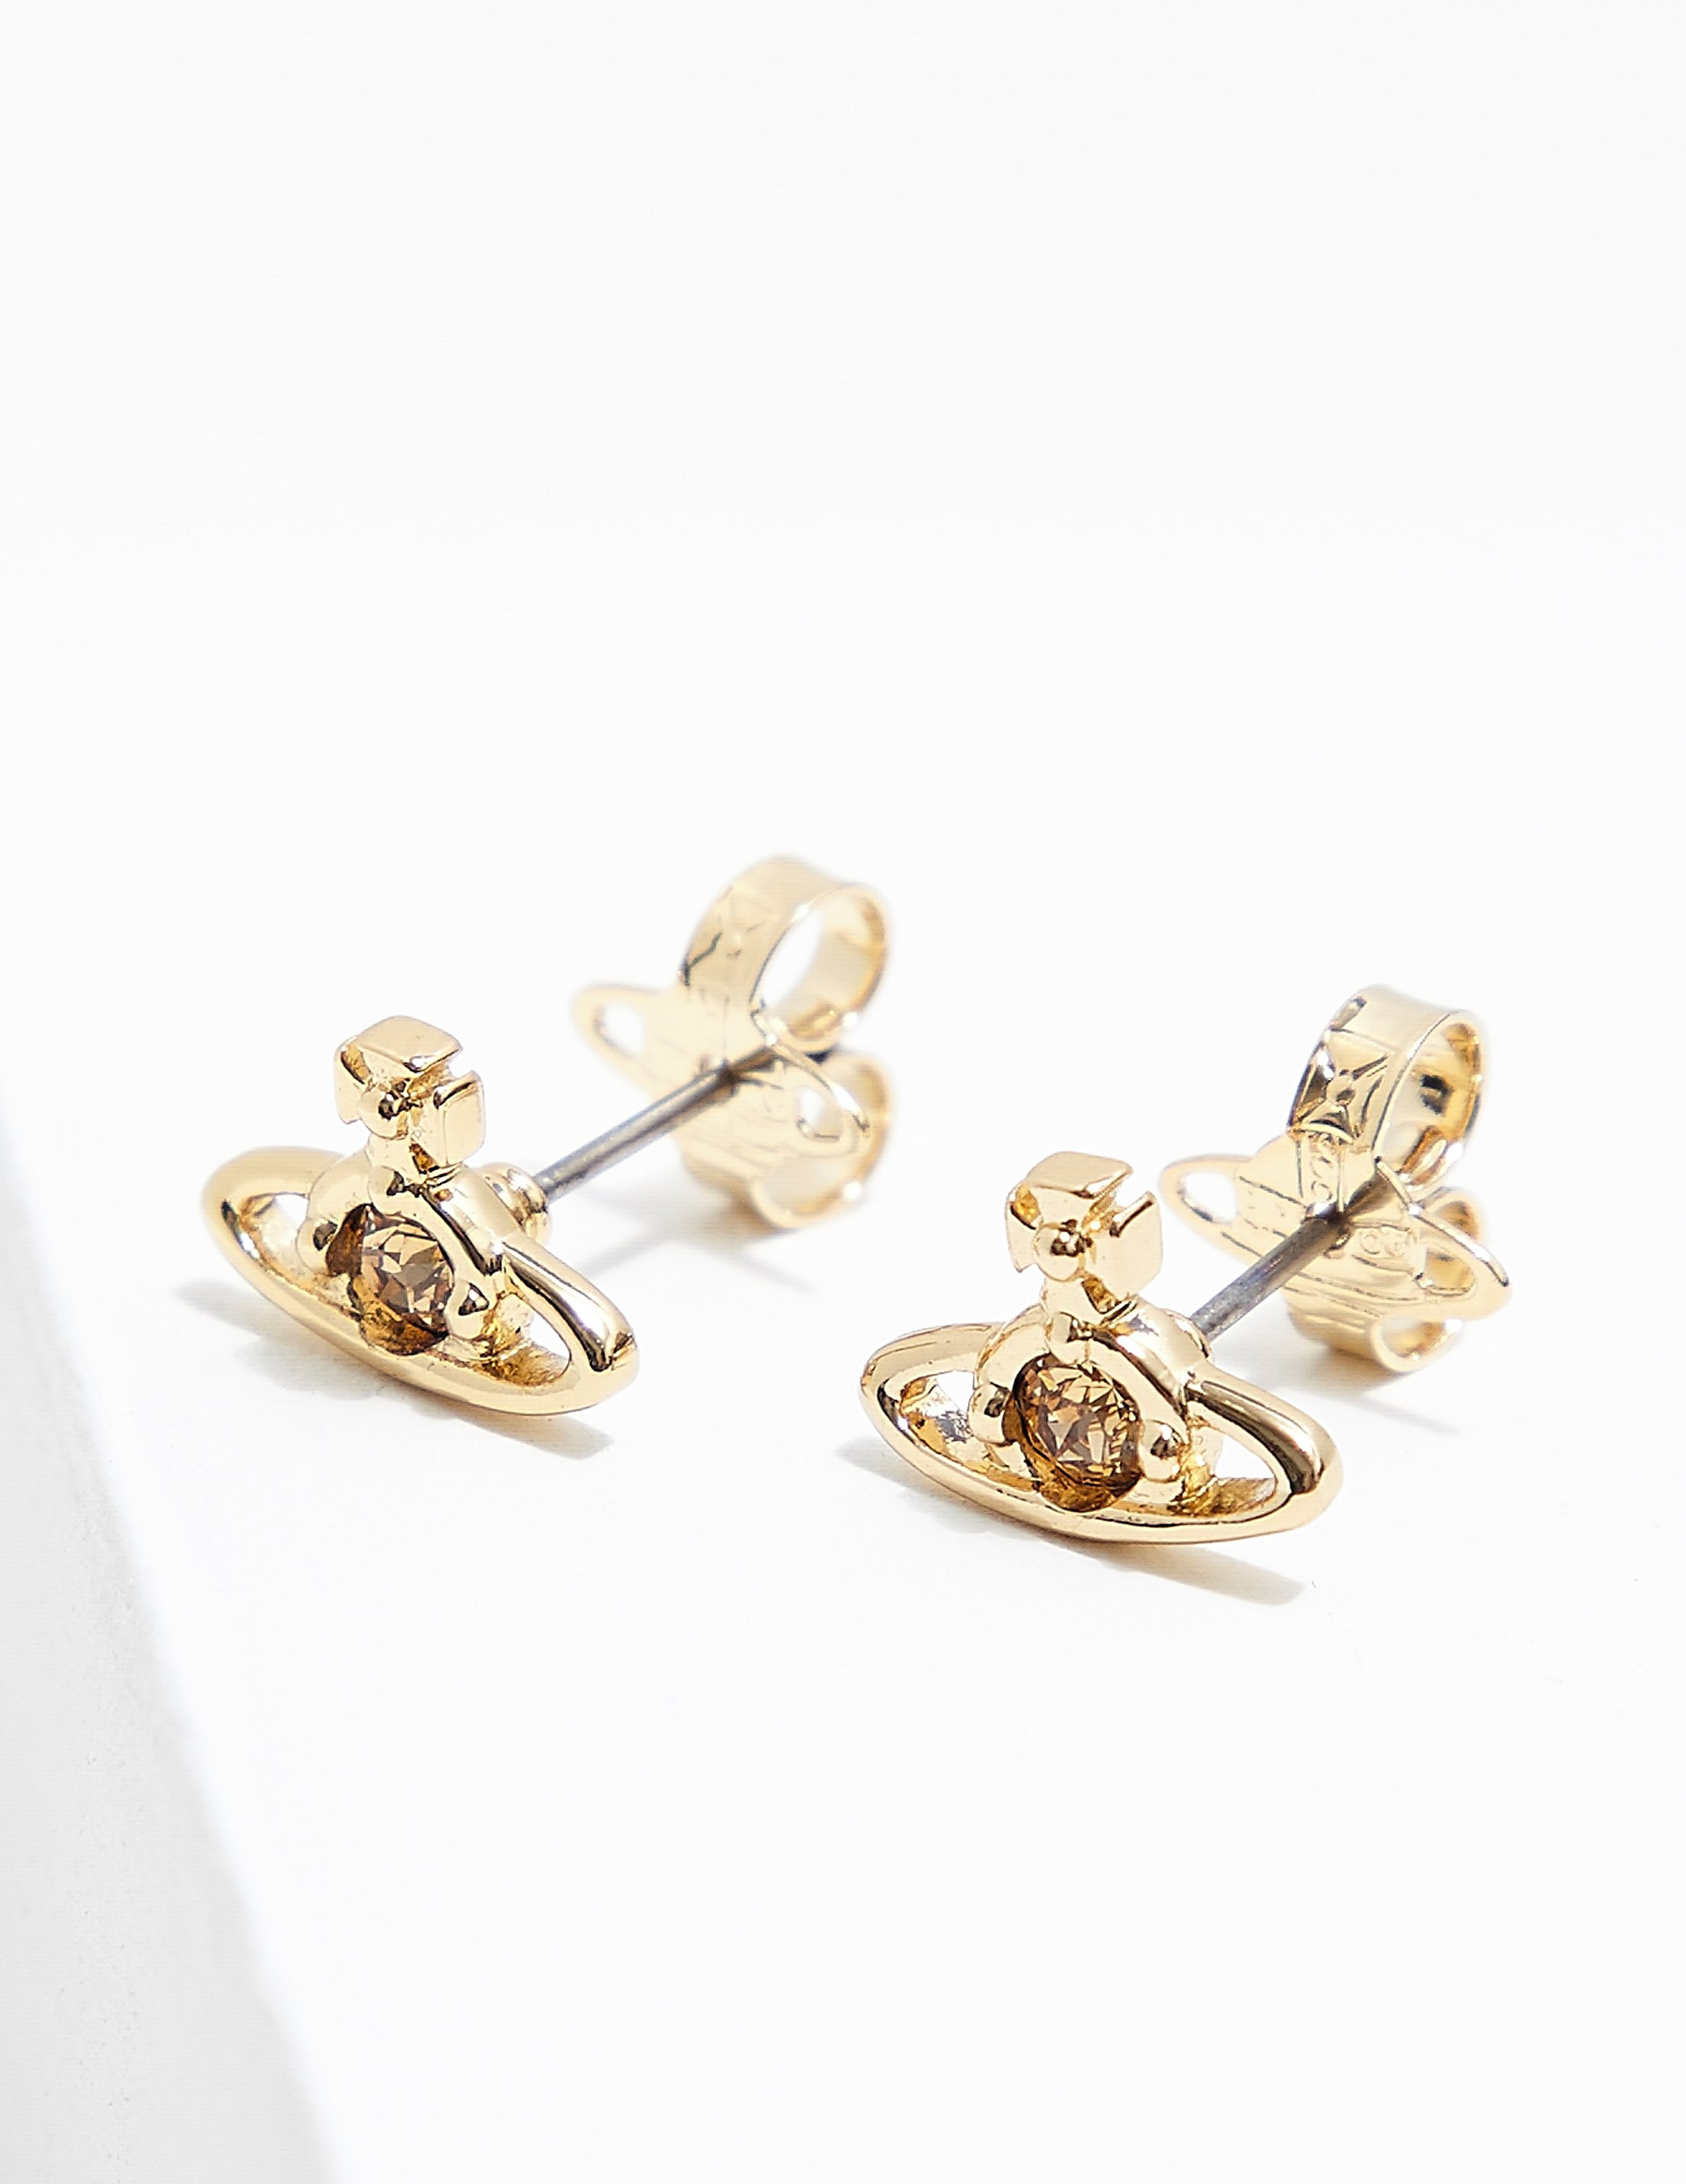 Vivienne Westwood Nano Stud Earrings